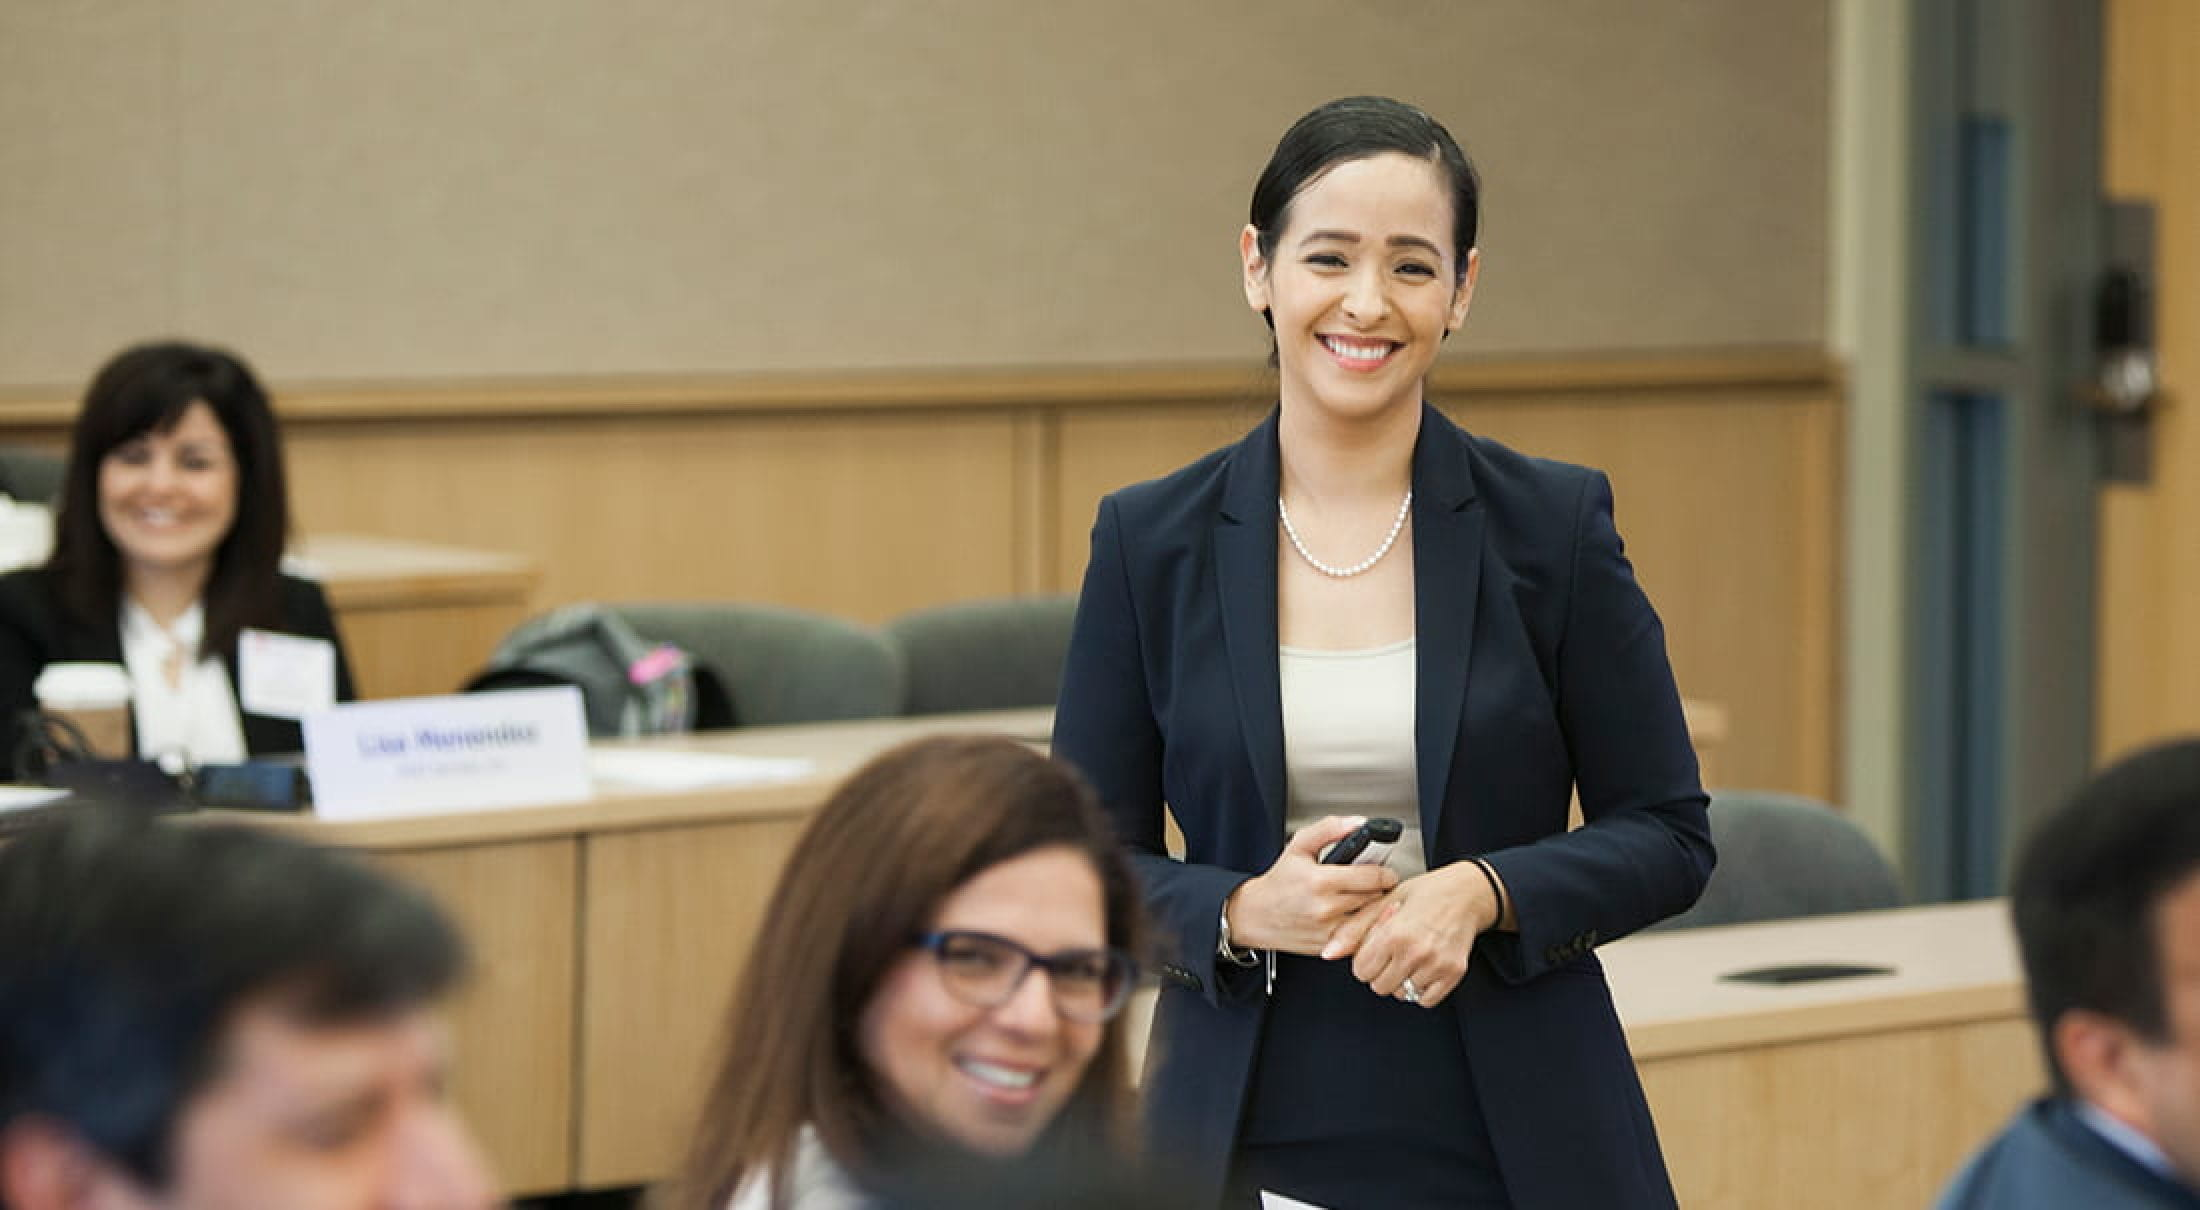 Ana Rodriguez of the Latino Leadership Initiative in the Cox School of Business.